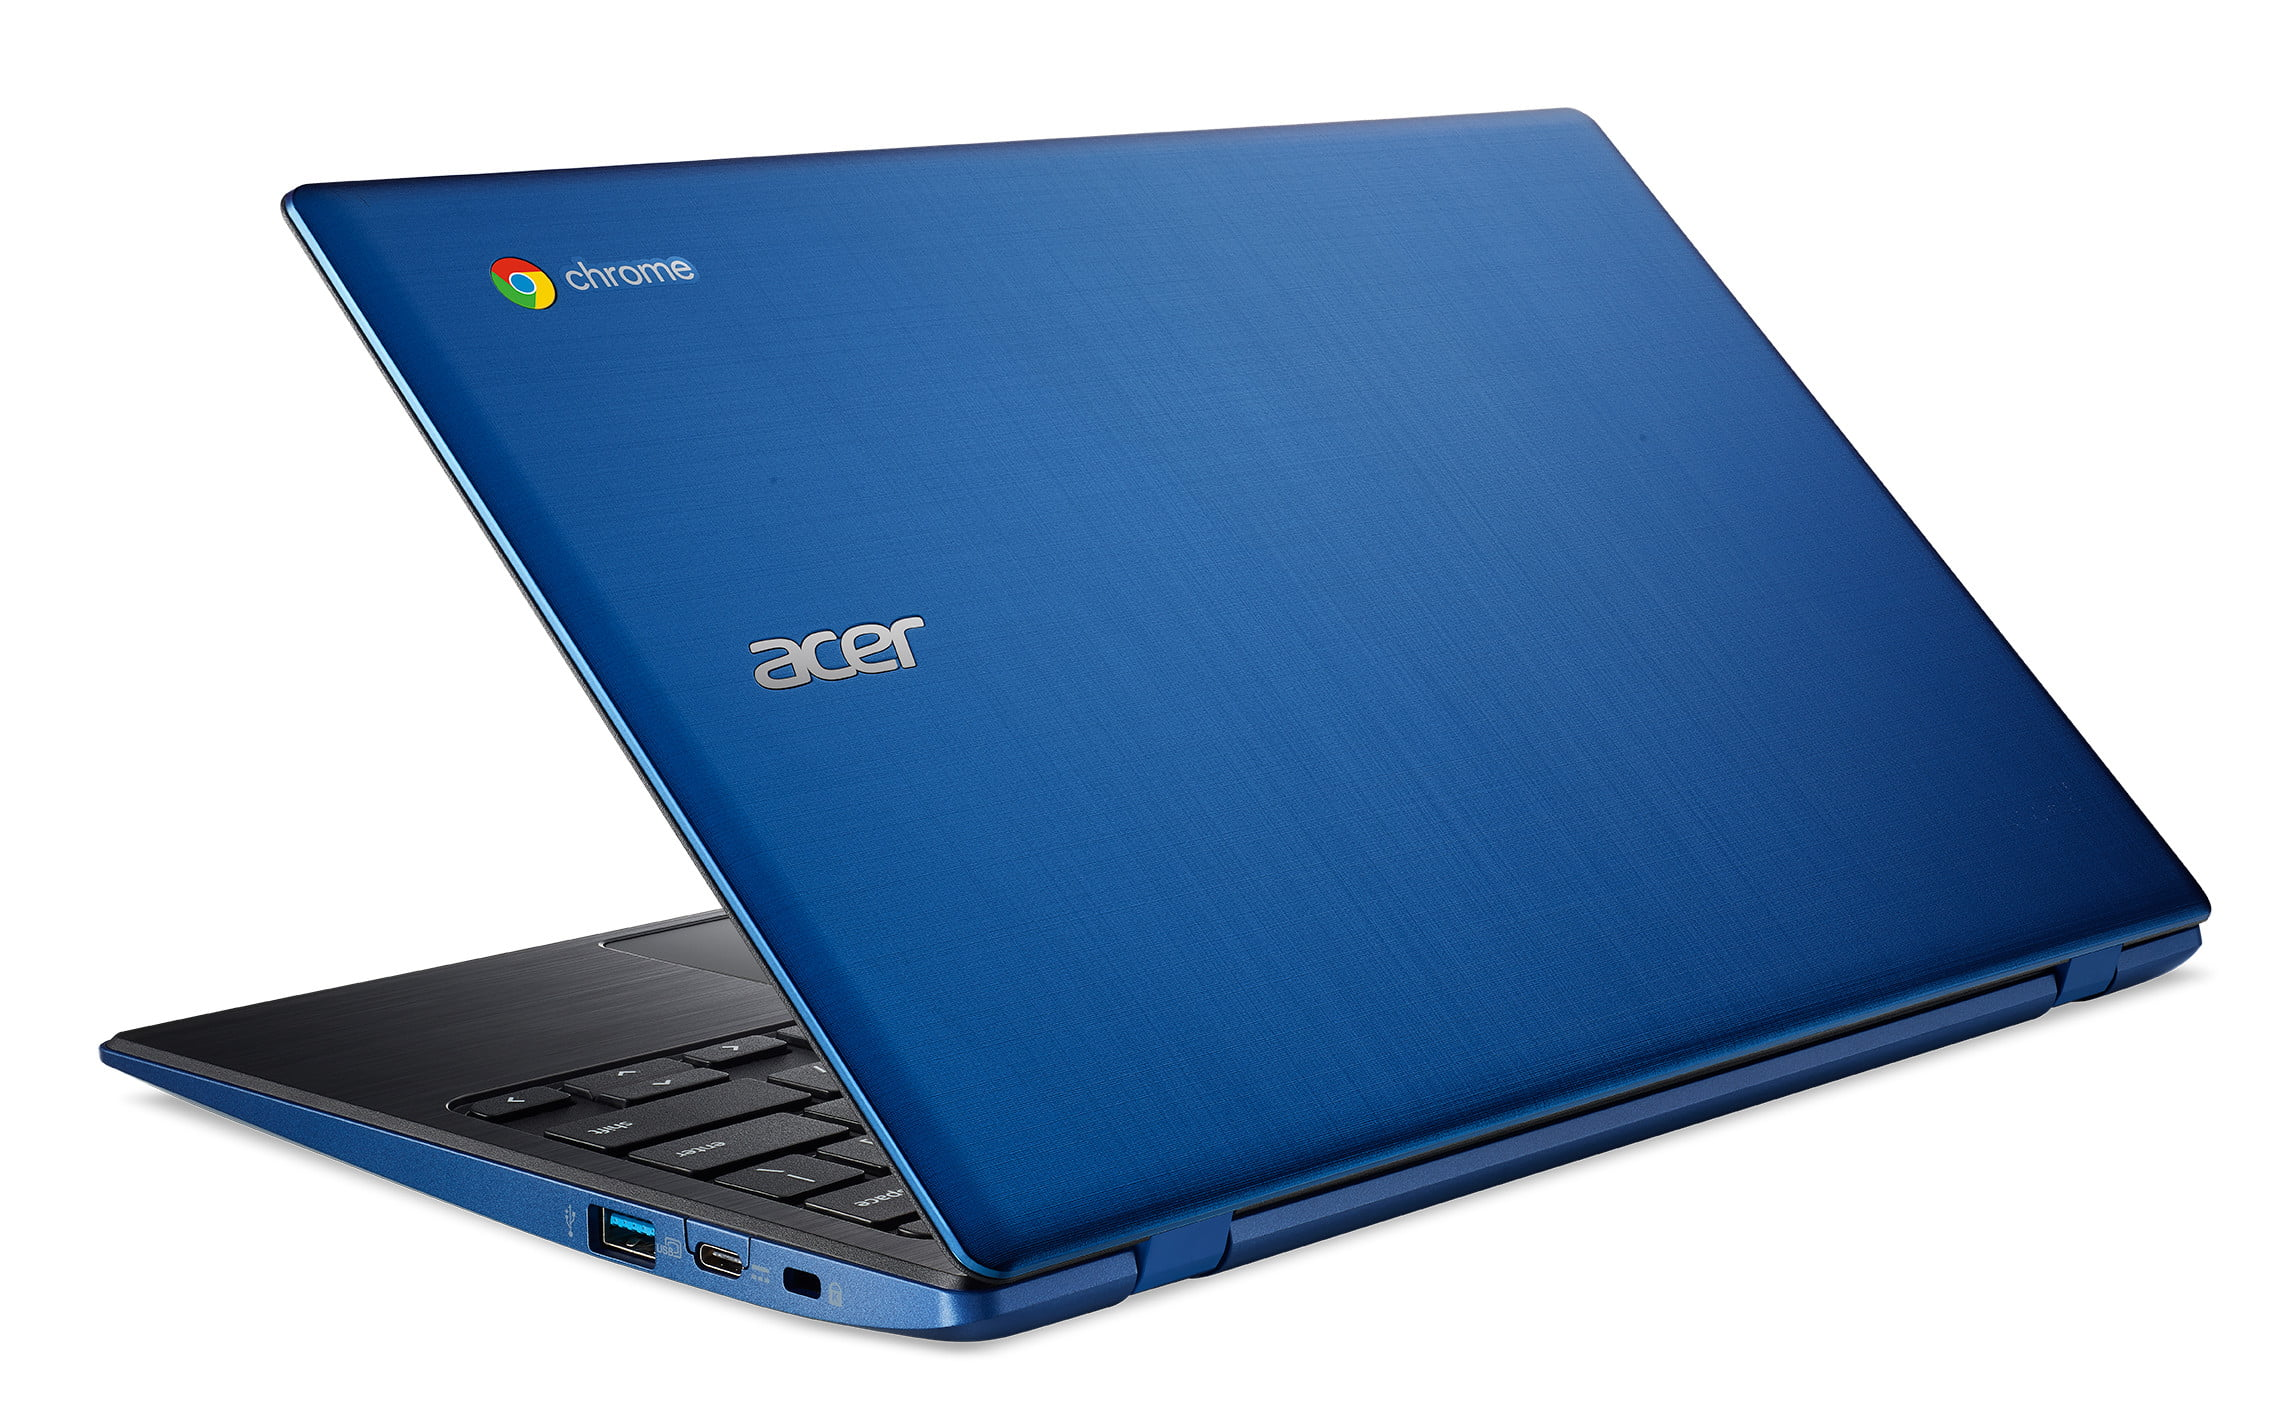 acer laptop swift 7 news ces 2018 chromebook 11  cb311 8h and 8ht 01